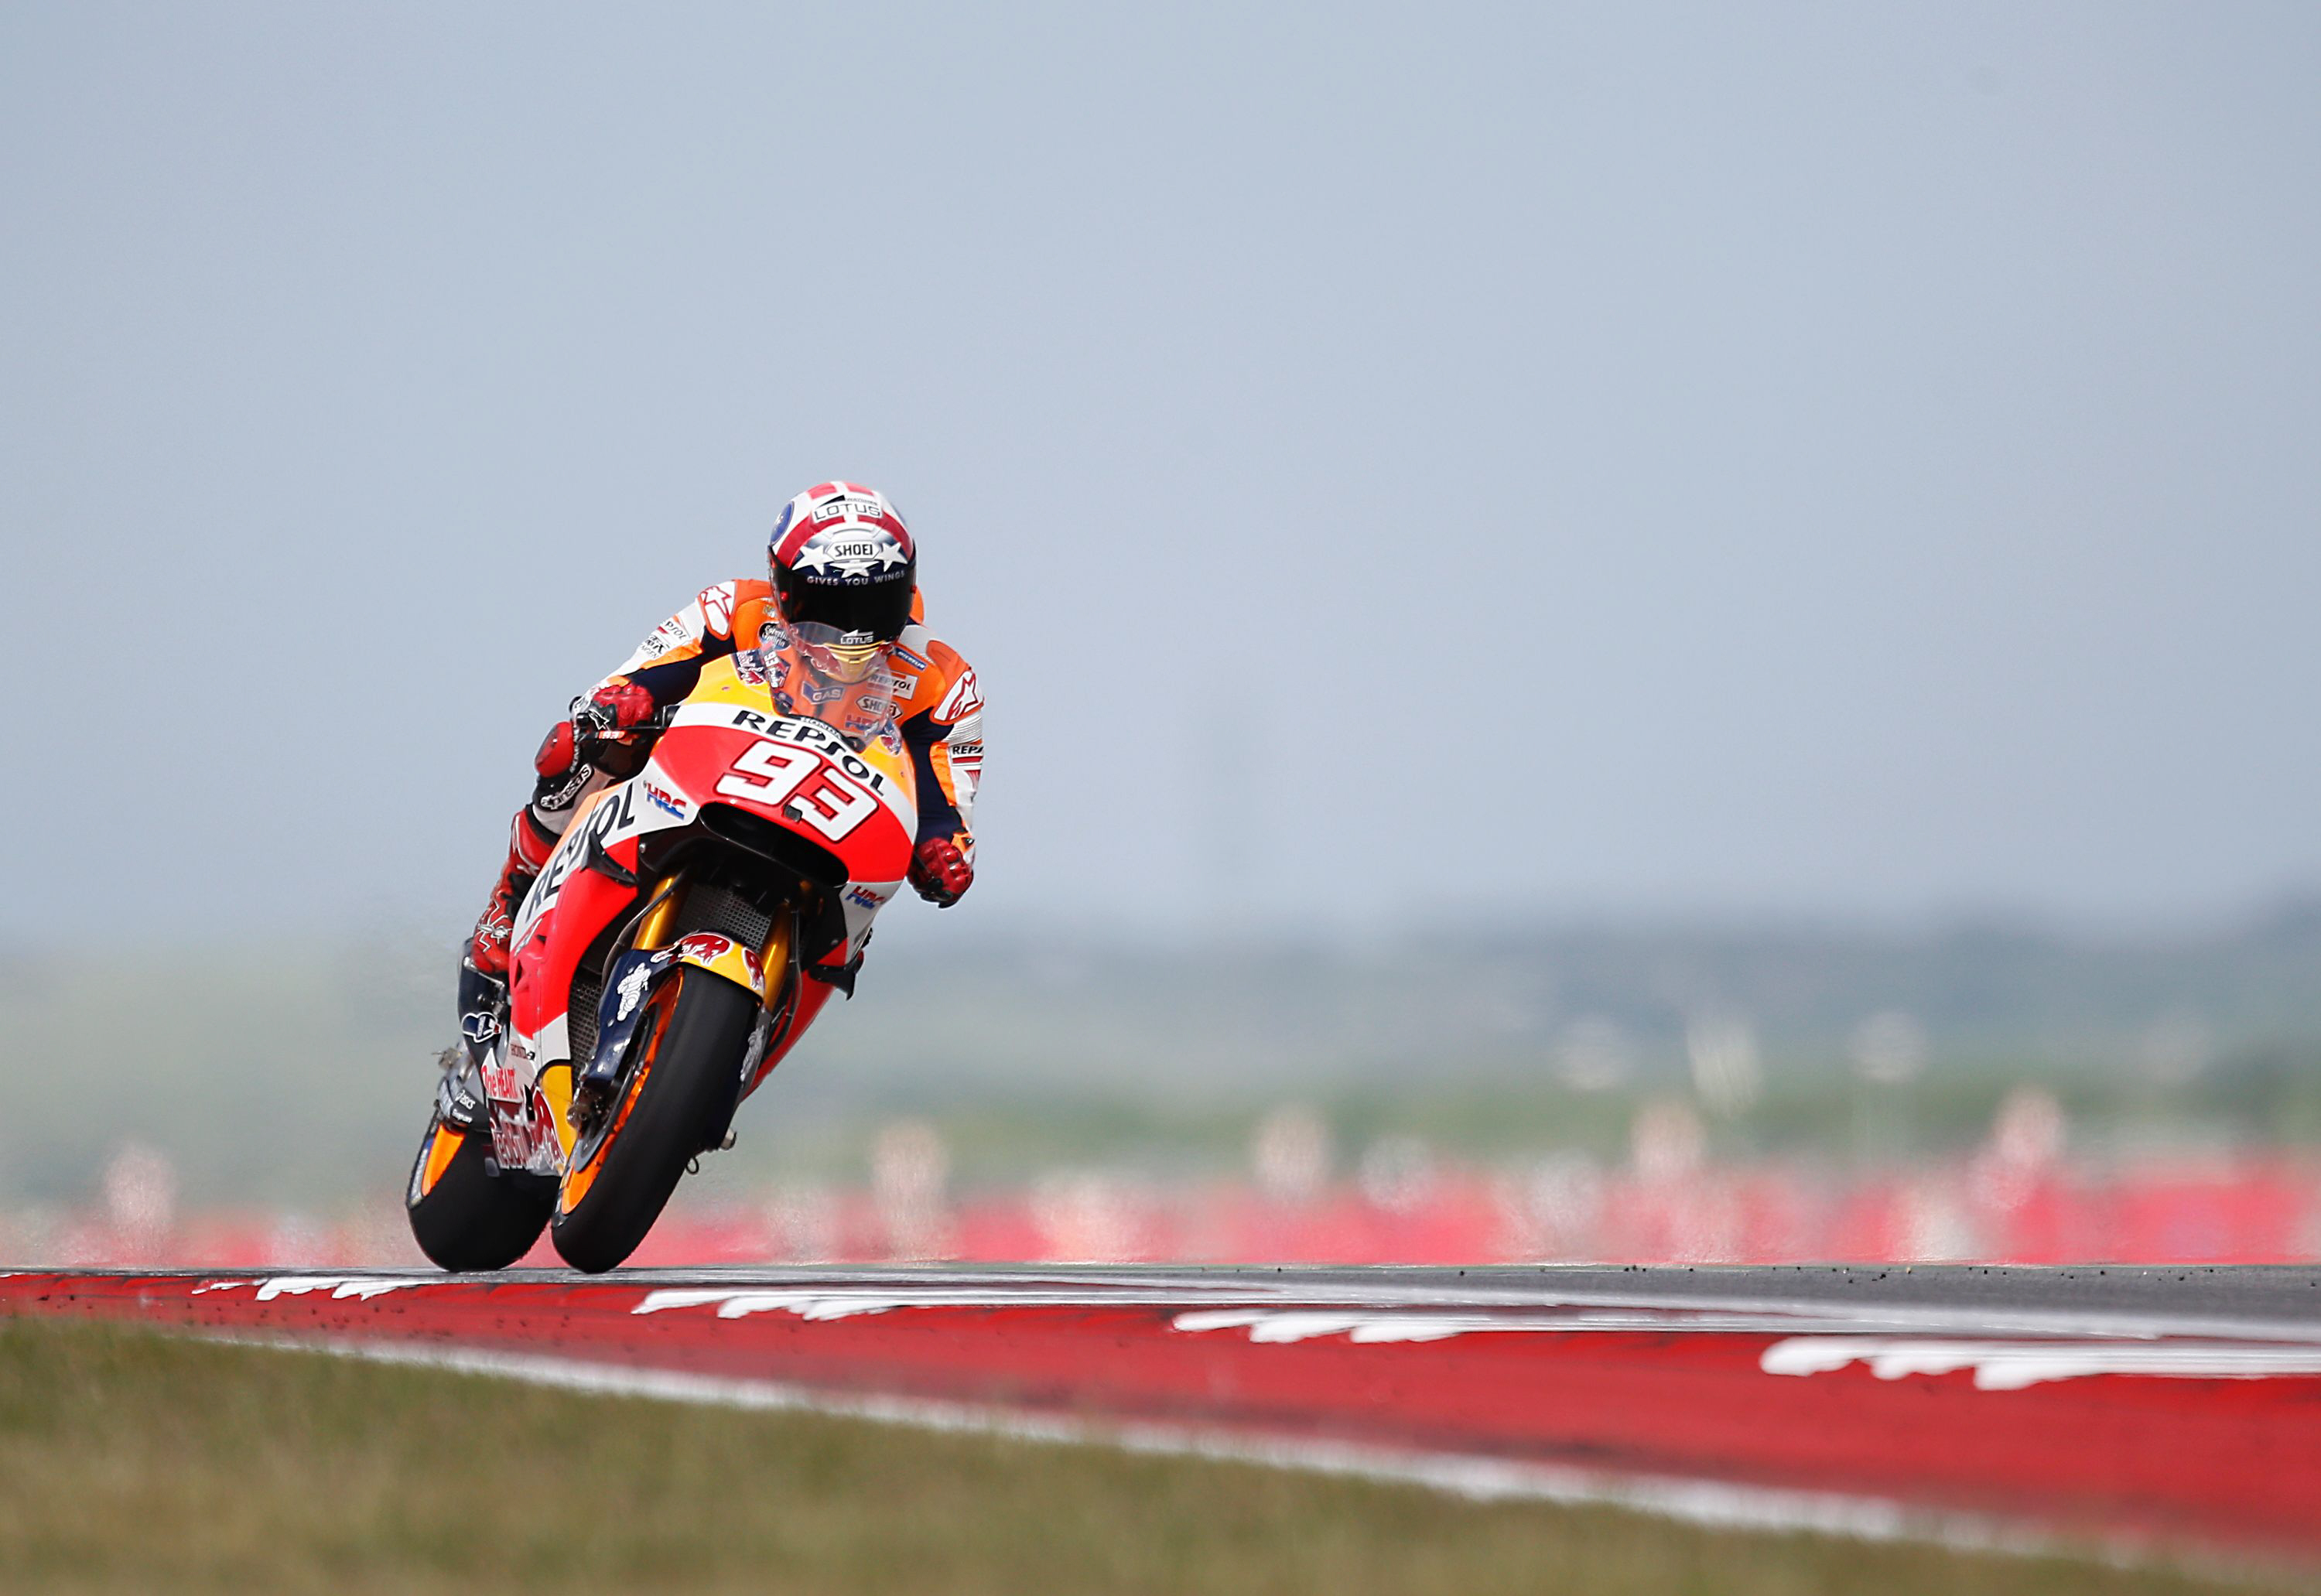 marc marquez takes a practice round during the 2016 grand prix of the americas moto gp race at circuit of the americas in austin texas on april 9 2016 photo afp